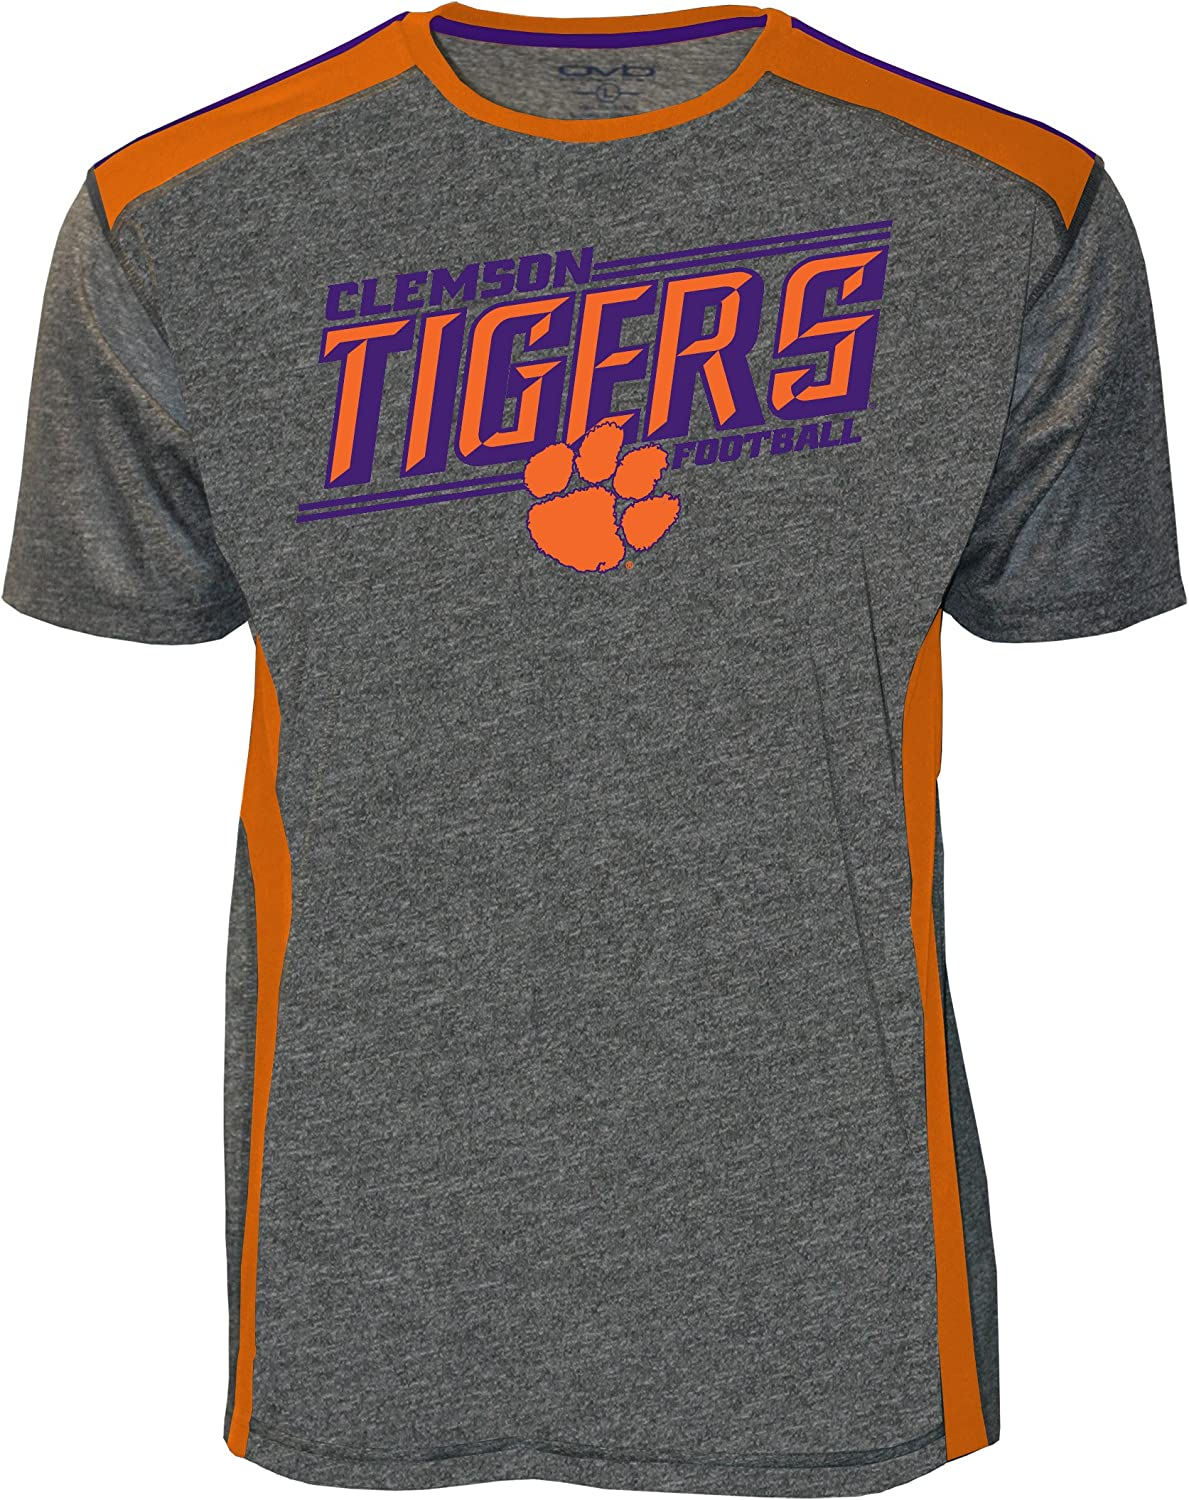 Charocal Heather,X-Large,Charcoal Heather Old Varsity Brand NCAA Clemson Tigers Adult Men NCAA Clemson Mens Screenprinted Poly Color Bock Tee